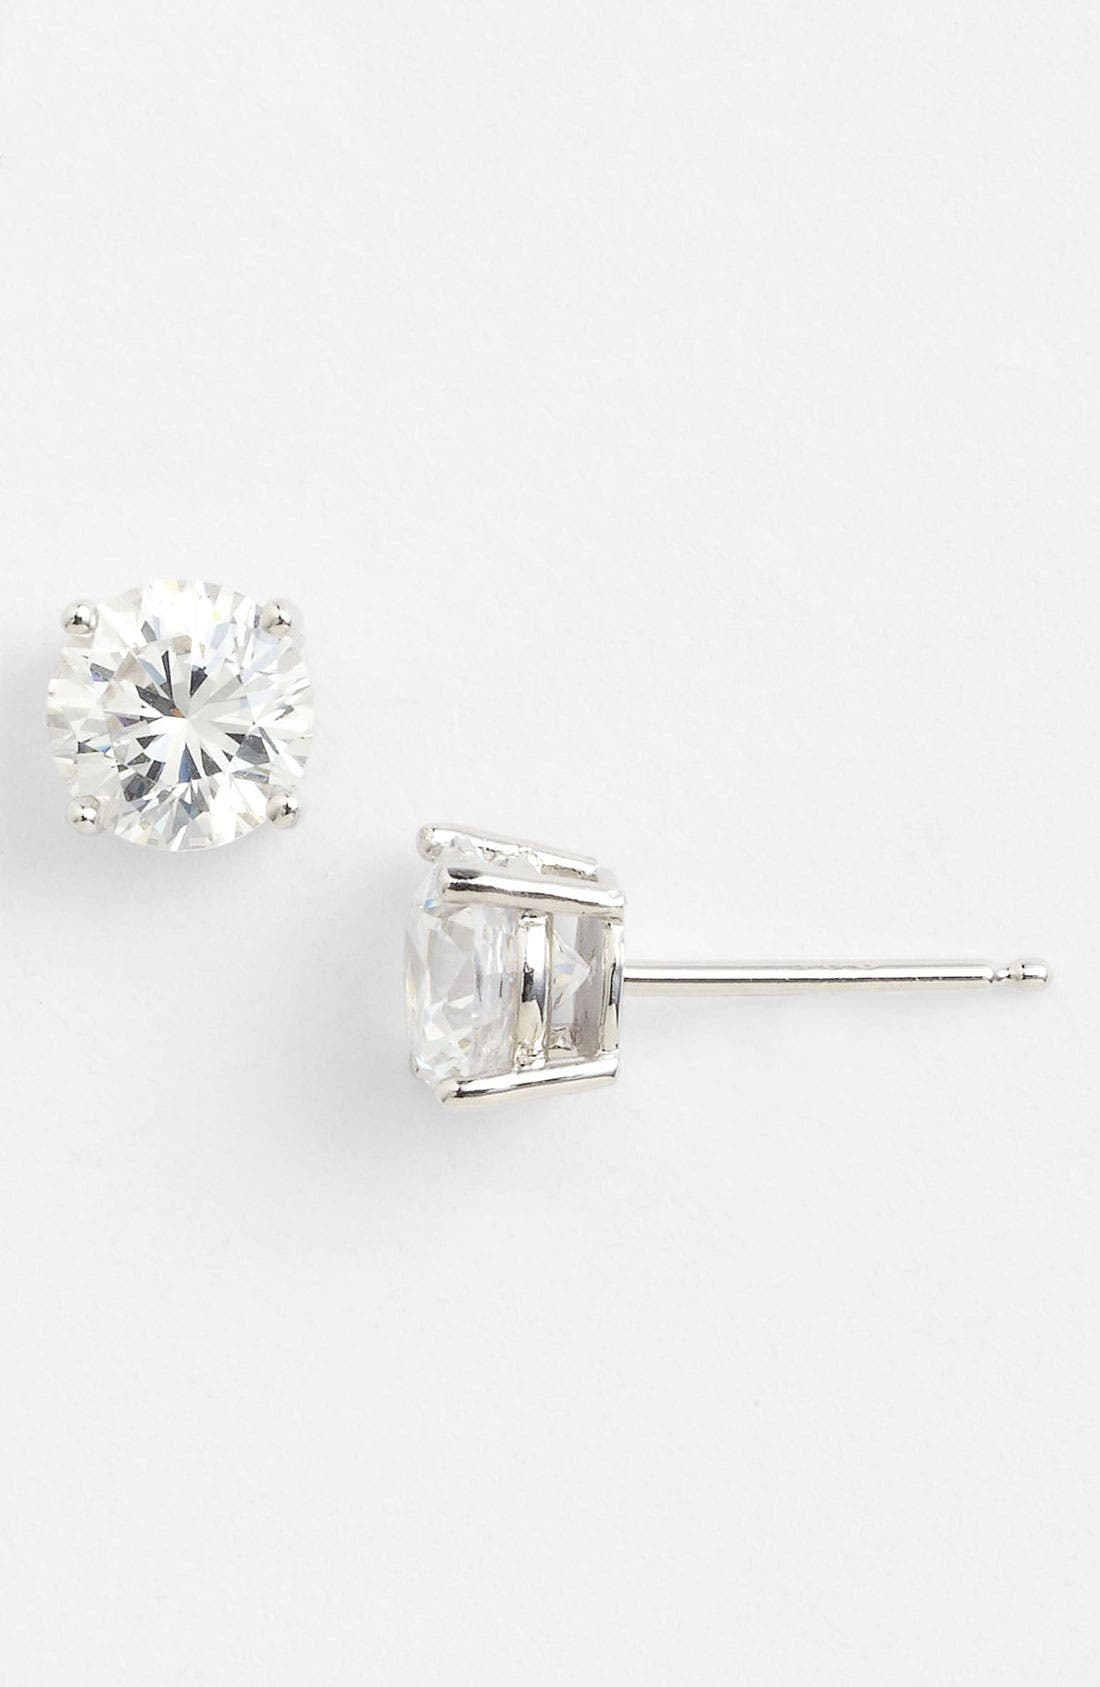 Alternate Image 1 Selected - Nordstrom Round 2ct Cubic Zirconia Earrings (Special Purchase)